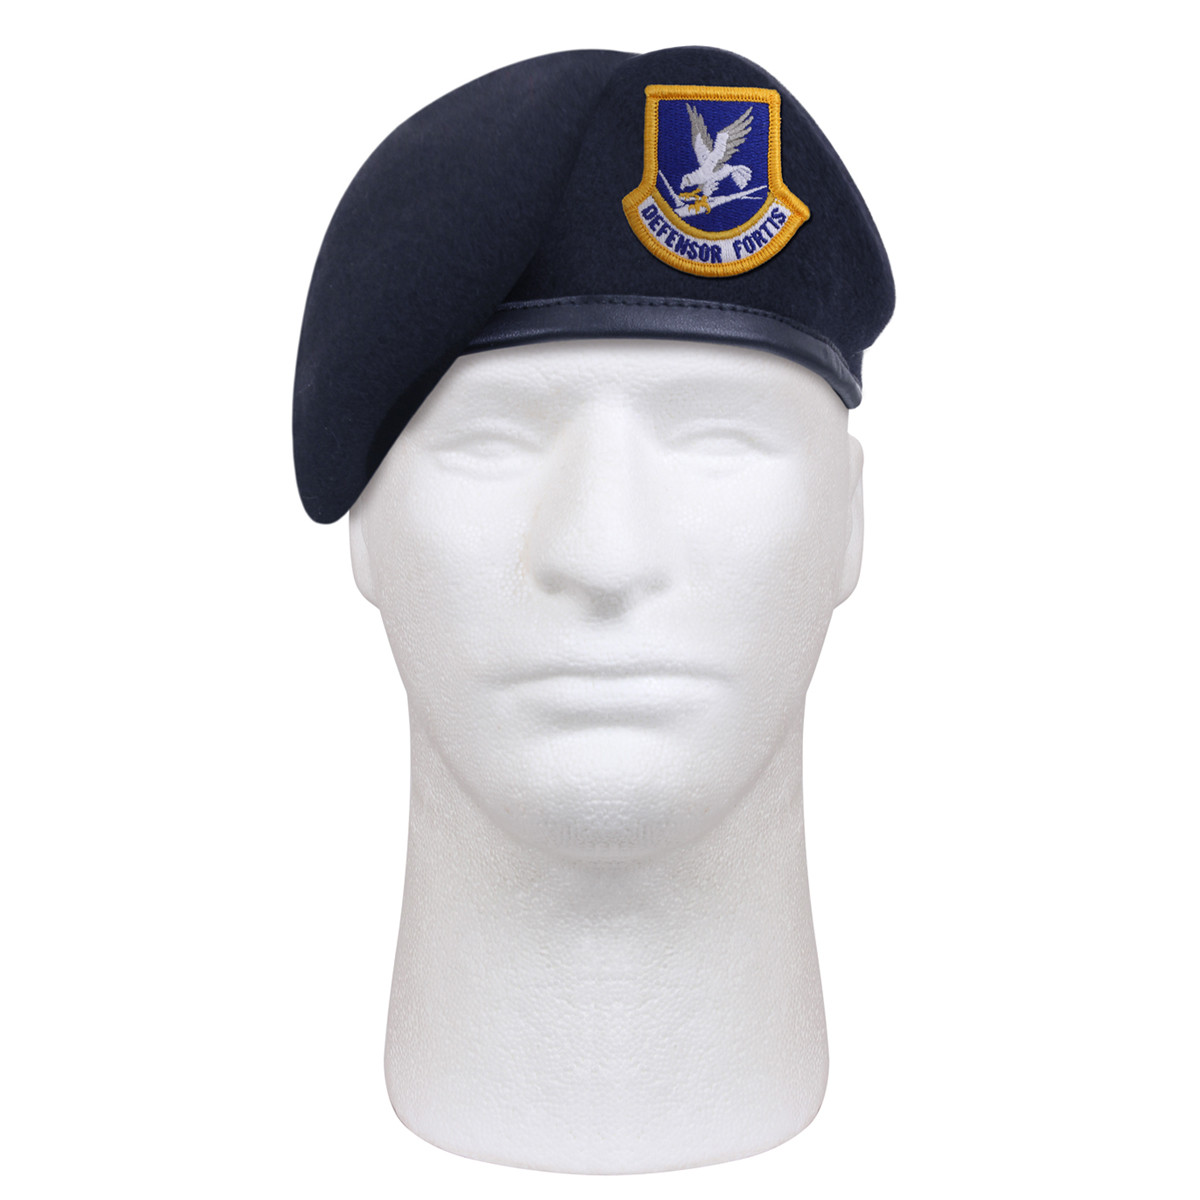 b63c0bd977867 Shop Inspection Ready USAF Beret - Fatigues Army Navy